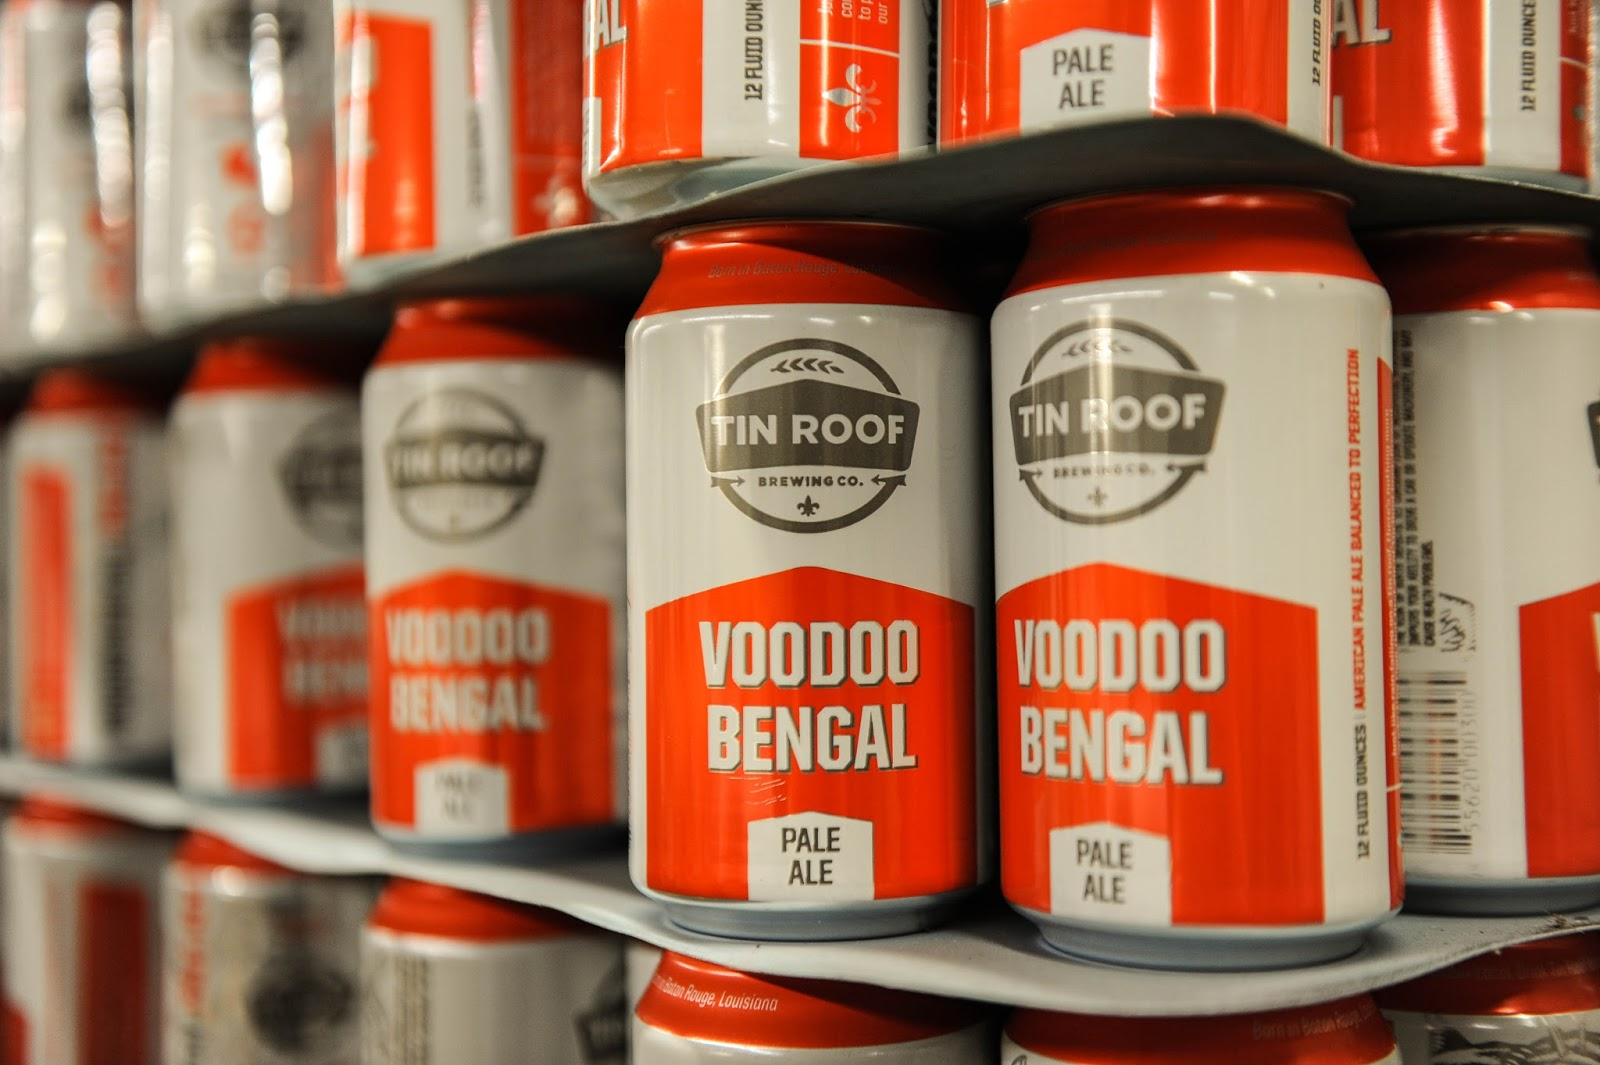 ... Tin Roof Blonde Ale, Perfect Tin Amber Ale, And Voodoo Bengal Pale Ale.  Additionally, They Continuously Produce Seasonal Brews For Visitors To Try!